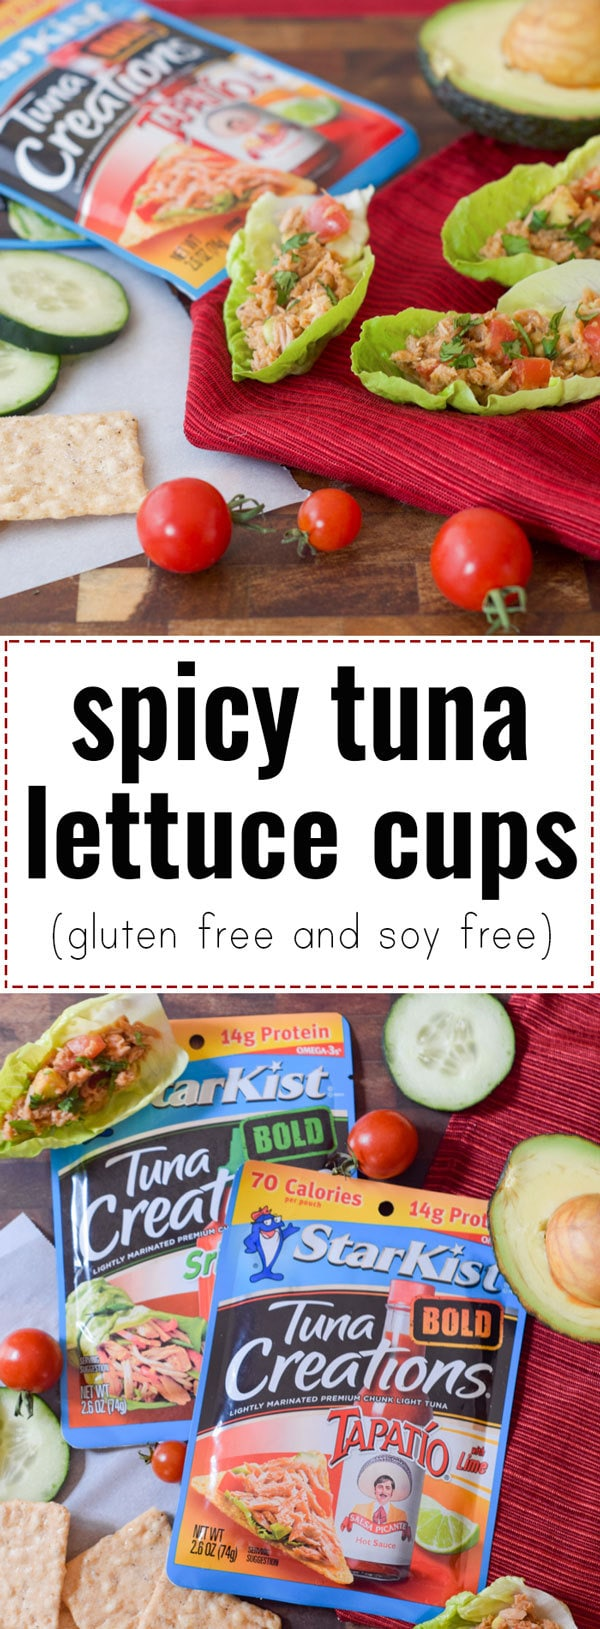 Spice up your lunchtime meals with these Spicy Tuna Lettuce Cups made with StarKist Tuna Creations BOLD Tapatío. These are gluten free, soy free, and nut free, so everyone can dig in! - #AD @TheFitCookie #TearEatGo